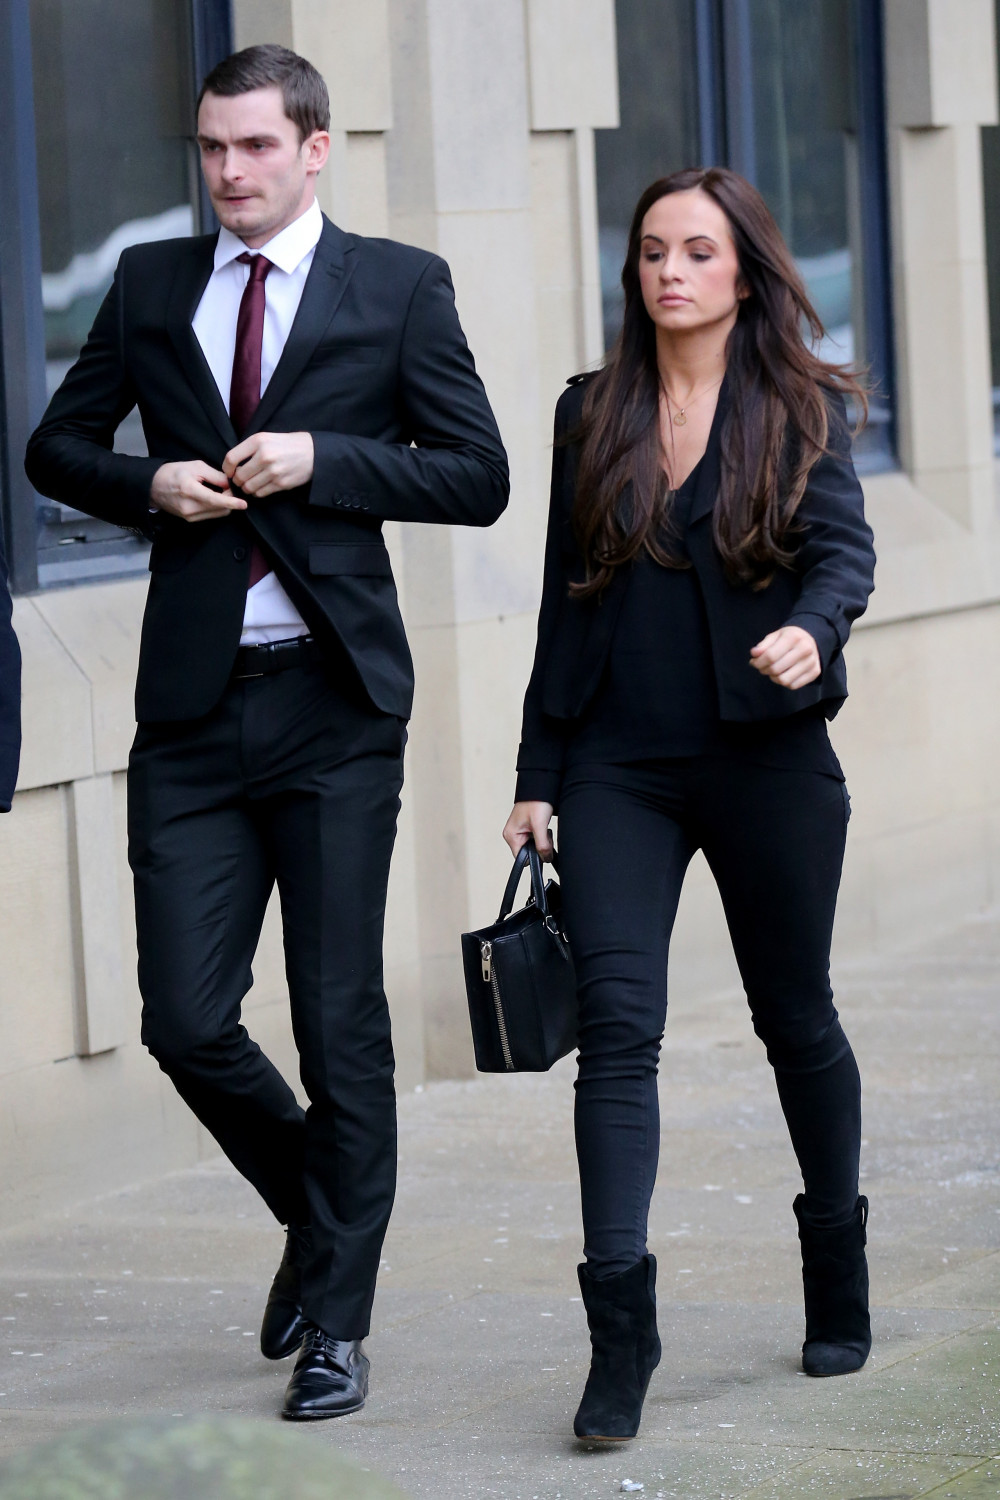 Adam Johnson and his girlfriend Stacey Flounders arrive at Bradford Crown Court where Johnson is facing child sexul assault charges on February 12, 2016 in Bradford, England. The fomer Sunderland FC midfielder, aged 28 and from Castle Eden, County Durham, is on trial for two counts of sexual activity having pleaded guilty to two others.